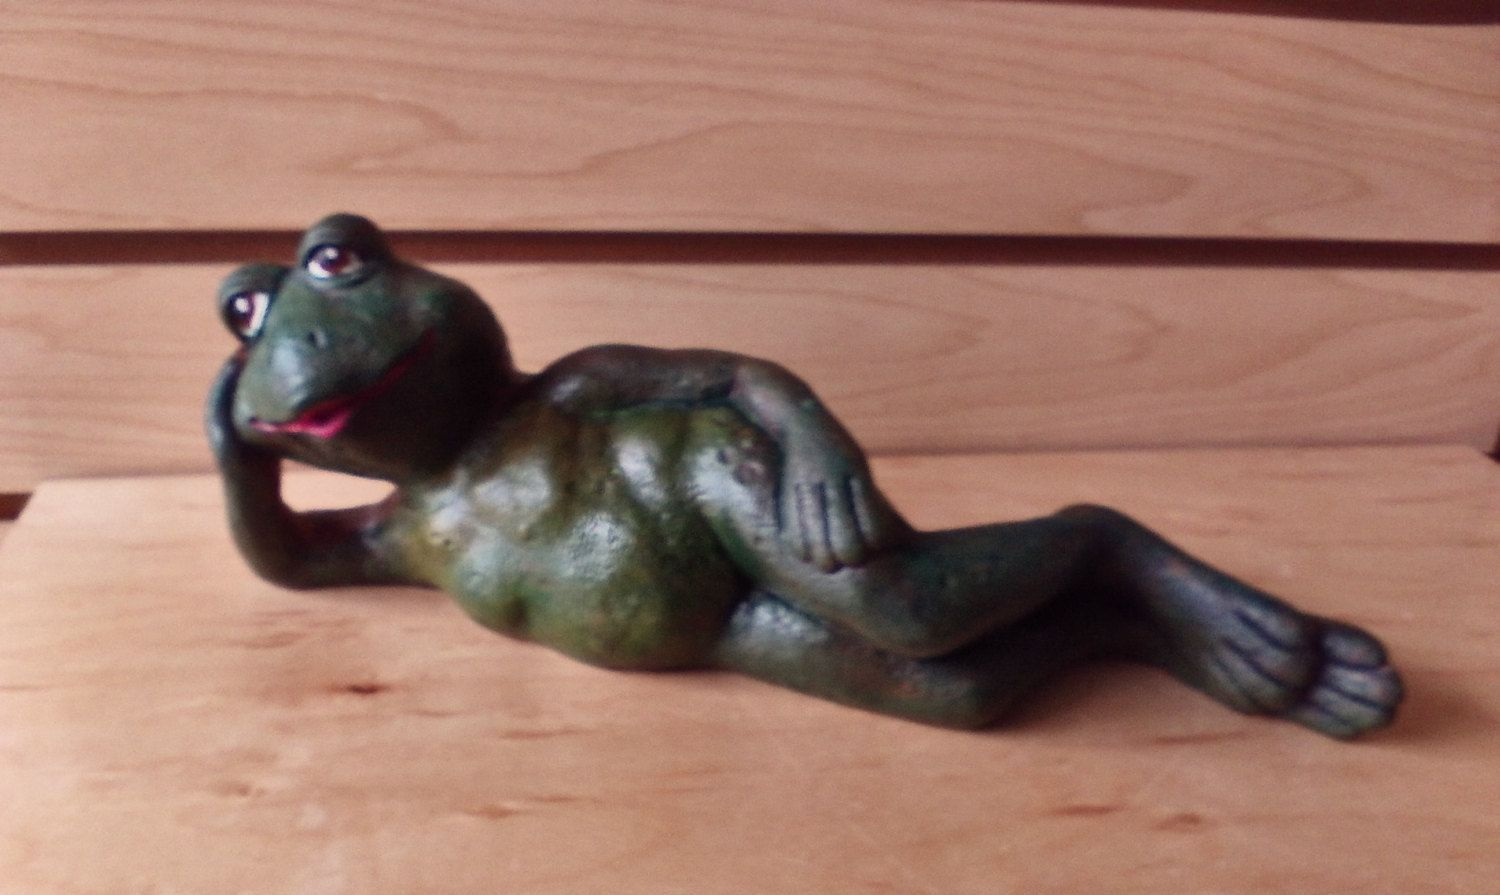 Outdoor statue reclining frog Ceramic Frog statue Garden frog statue toad frog Fairy garden friend gift for her women's gift idea frog decor by MapleHillCeramics on Etsy